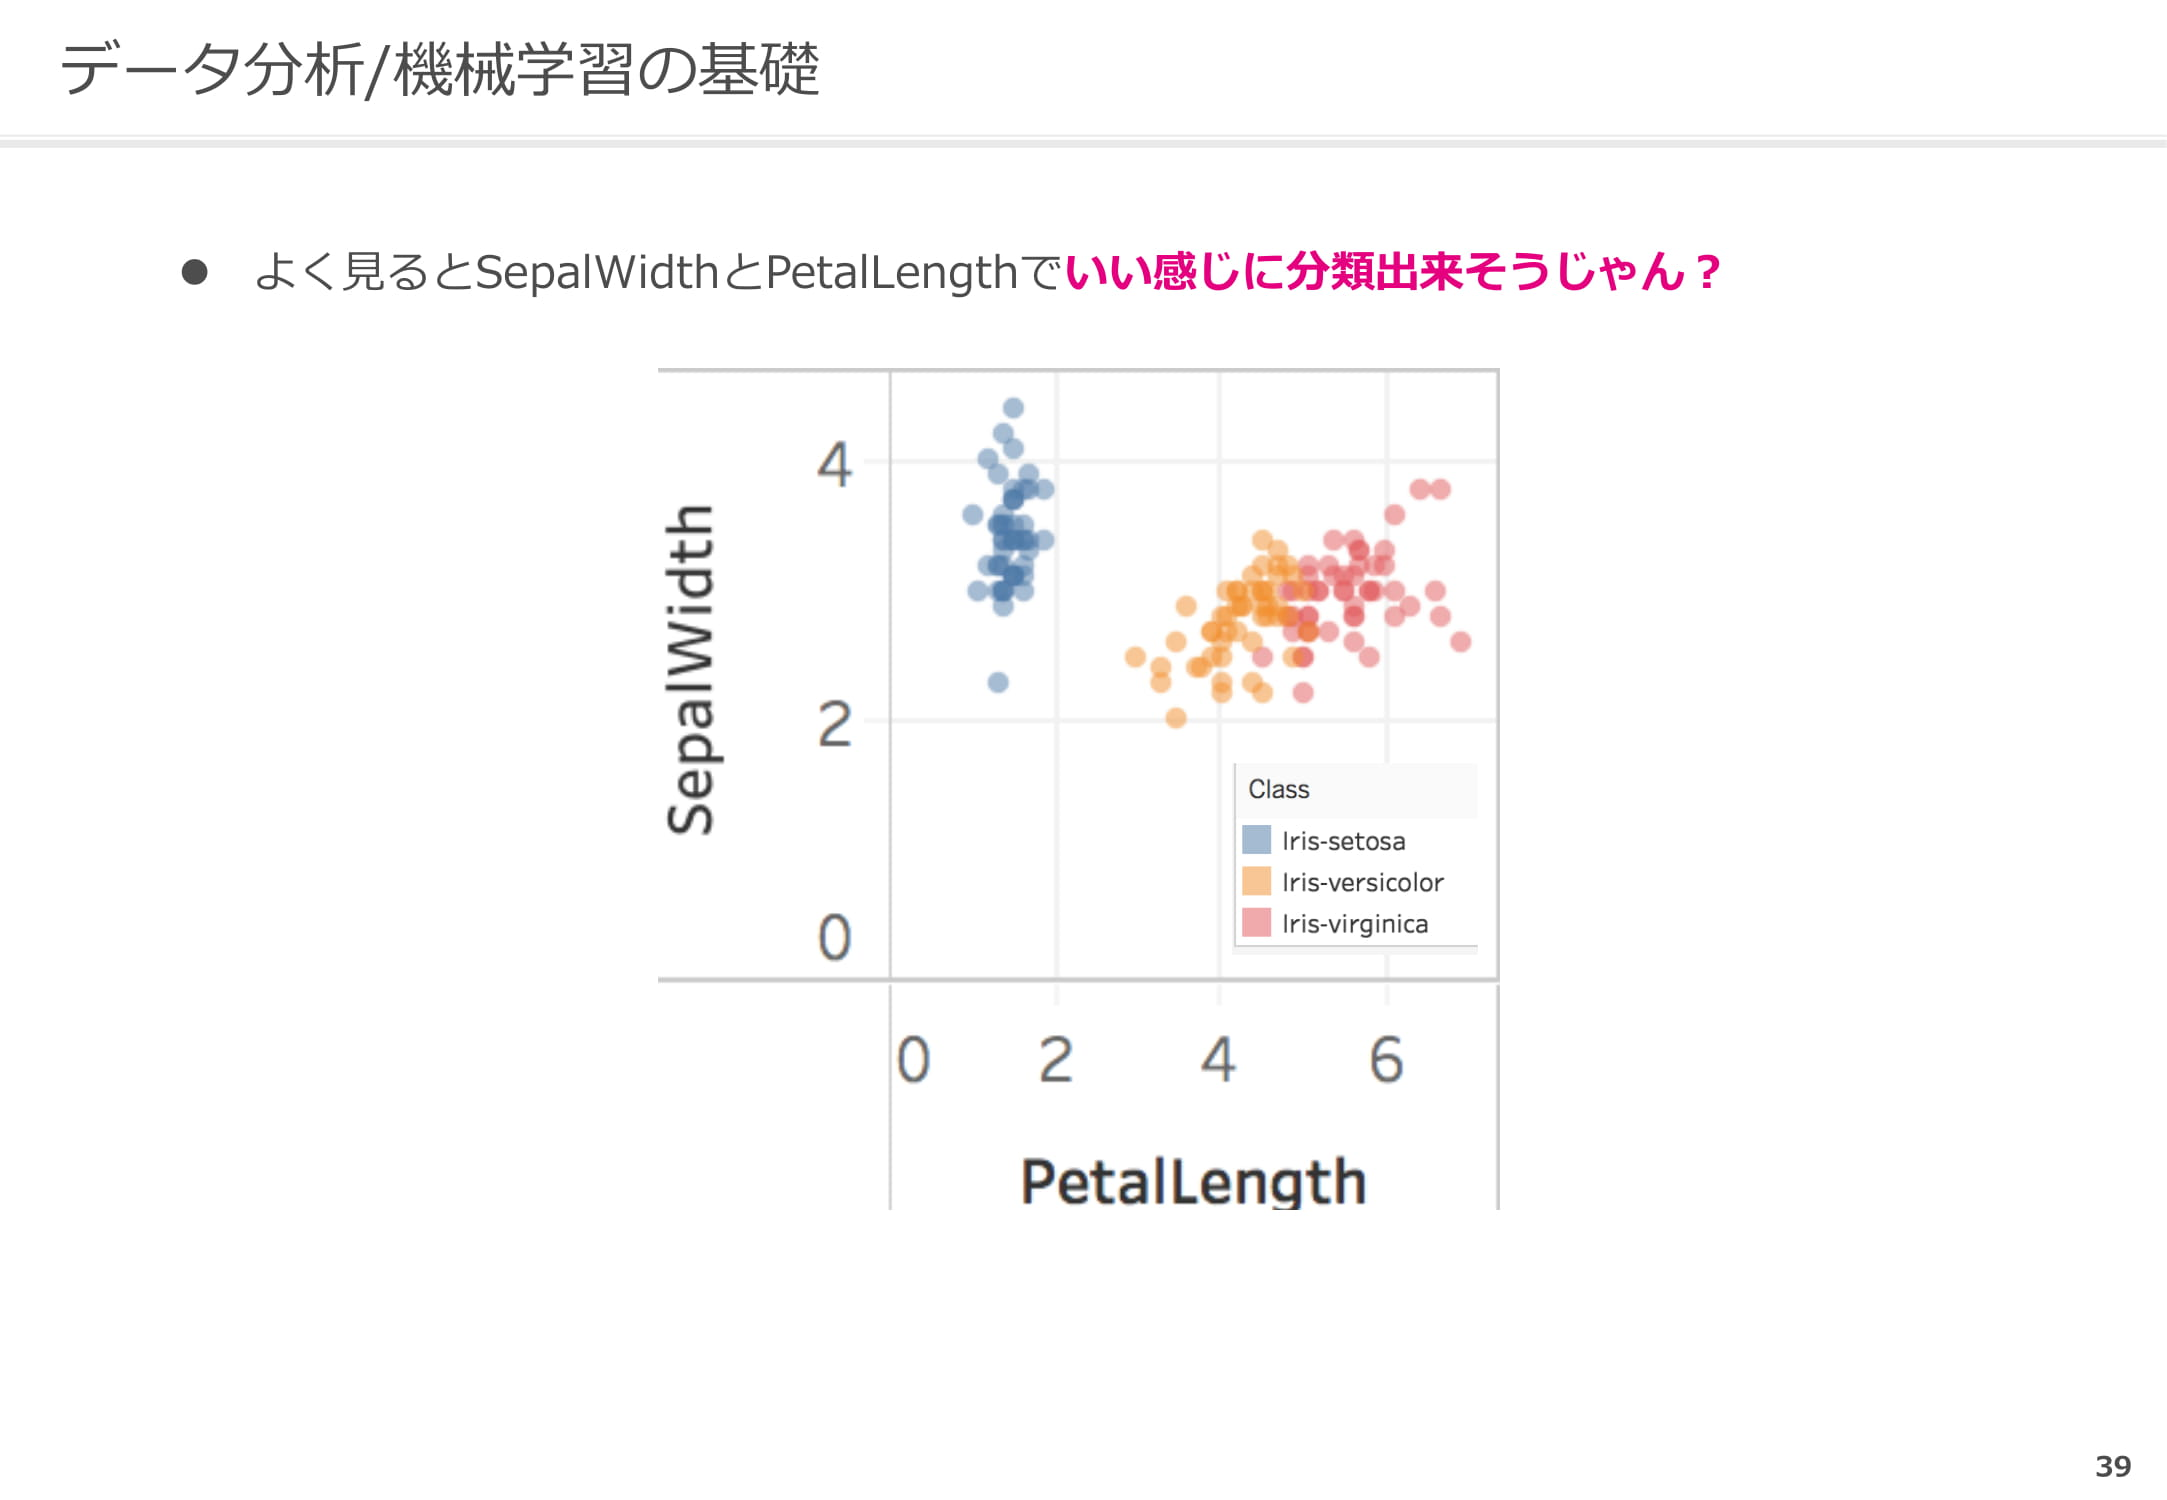 SepalWidthとPetalLengthで分析1